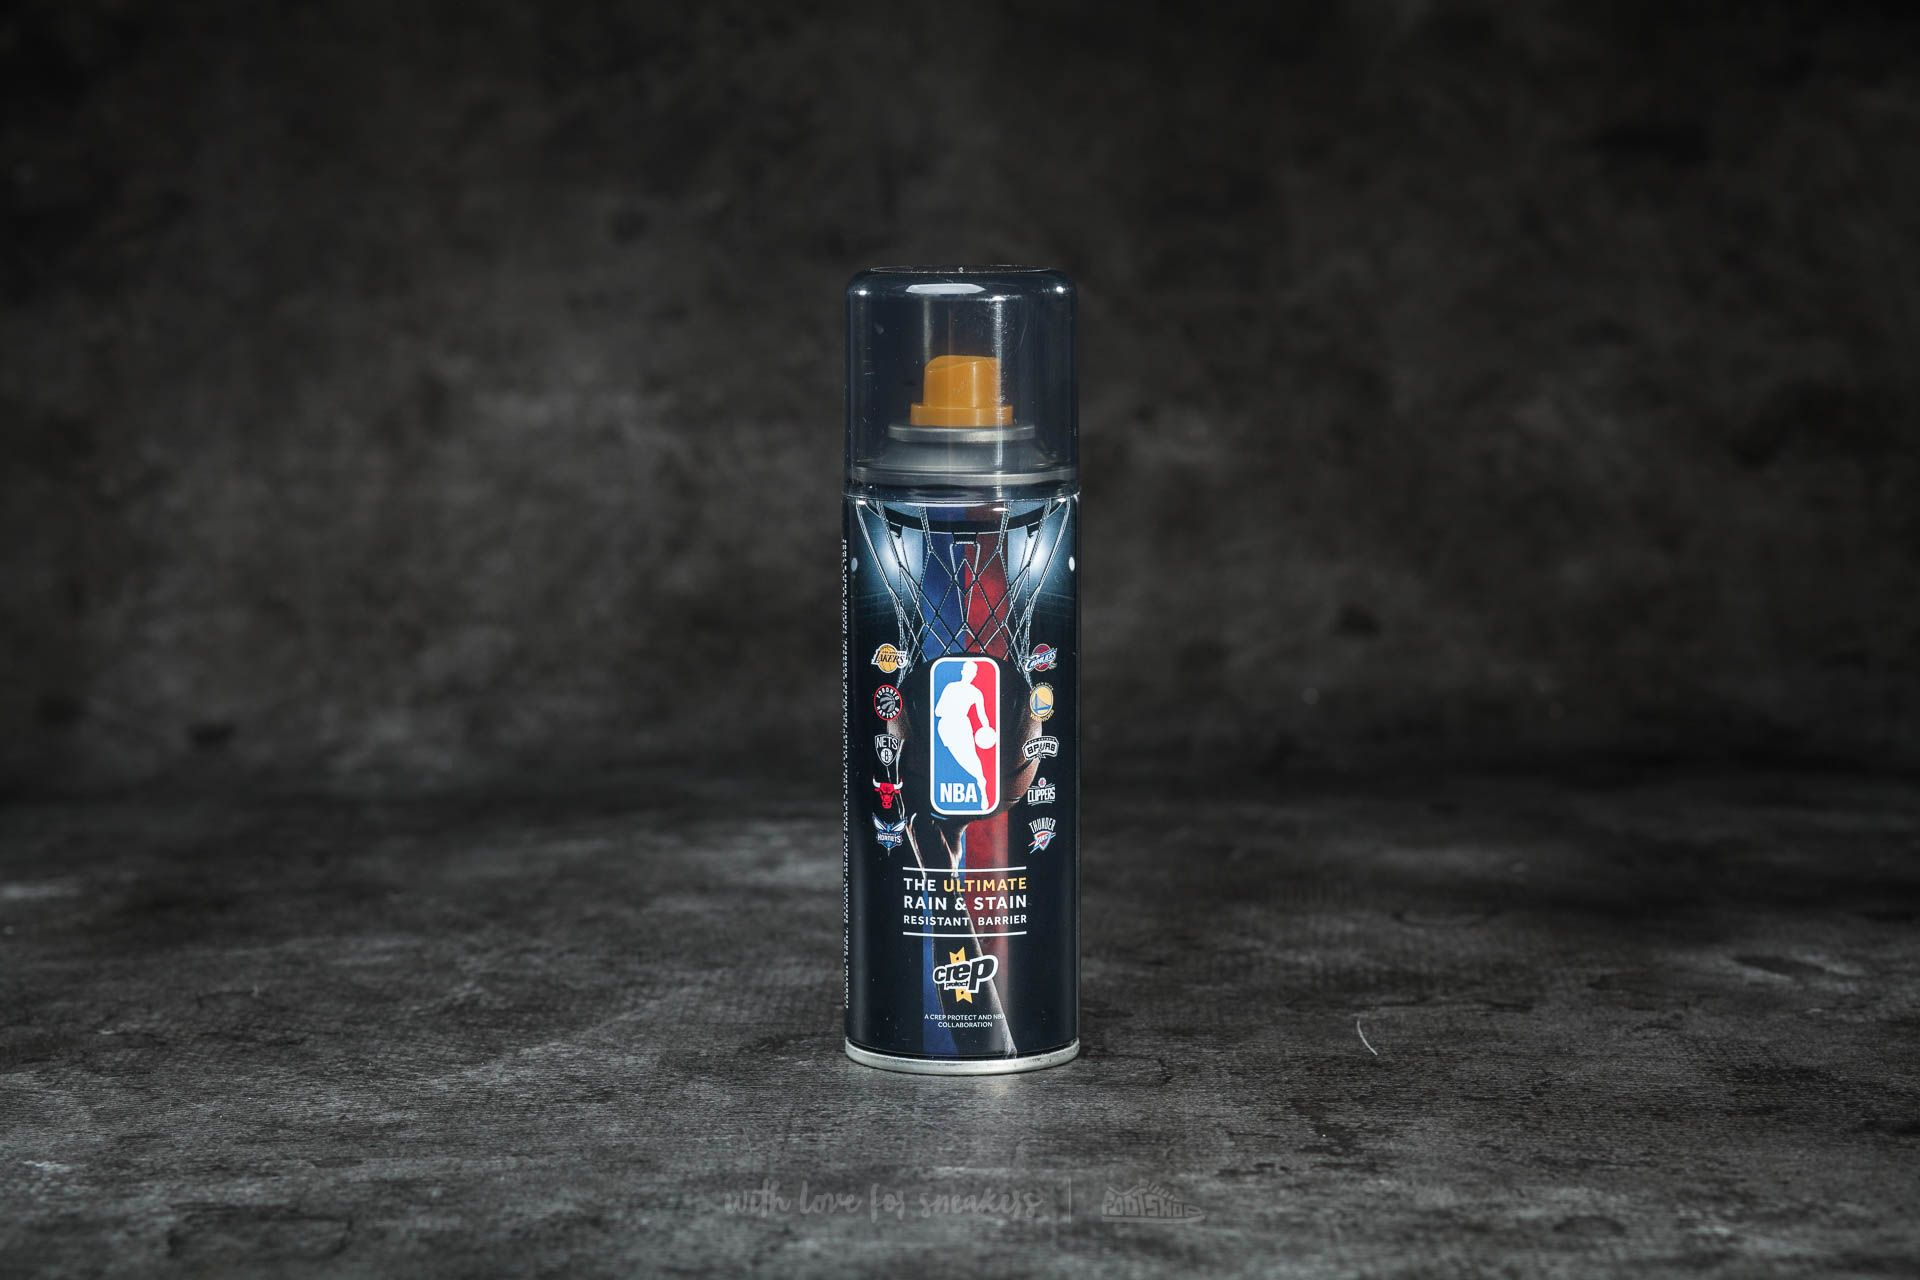 Crep Protect x NBA The Ultimate Rain&Stain 200ml Can Black